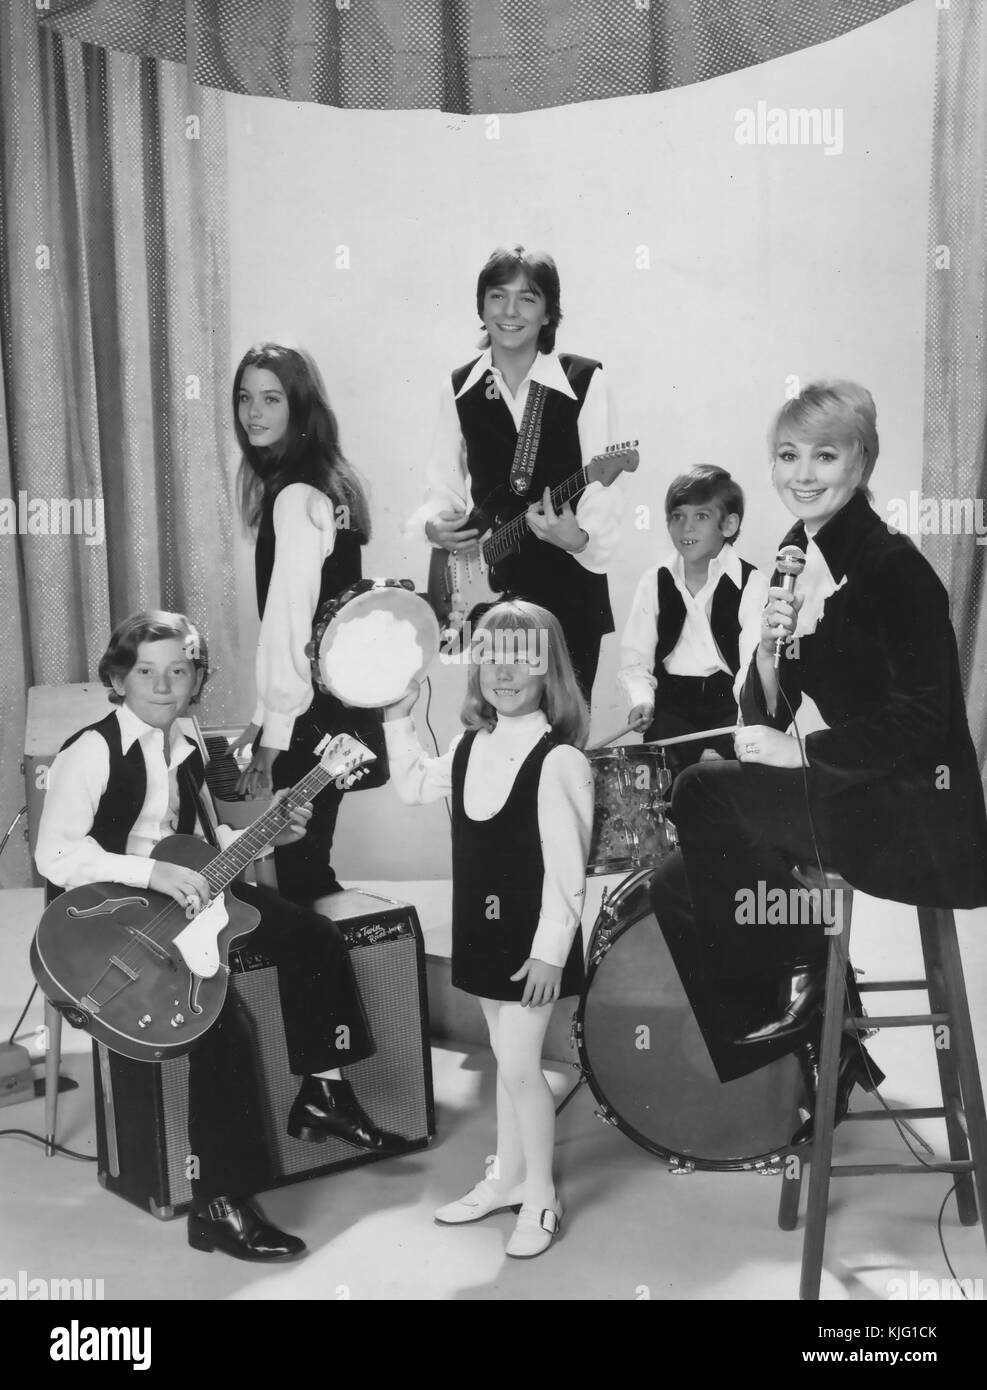 THE PARTRIDGE FAMILY Screen Gems American TV series 1970